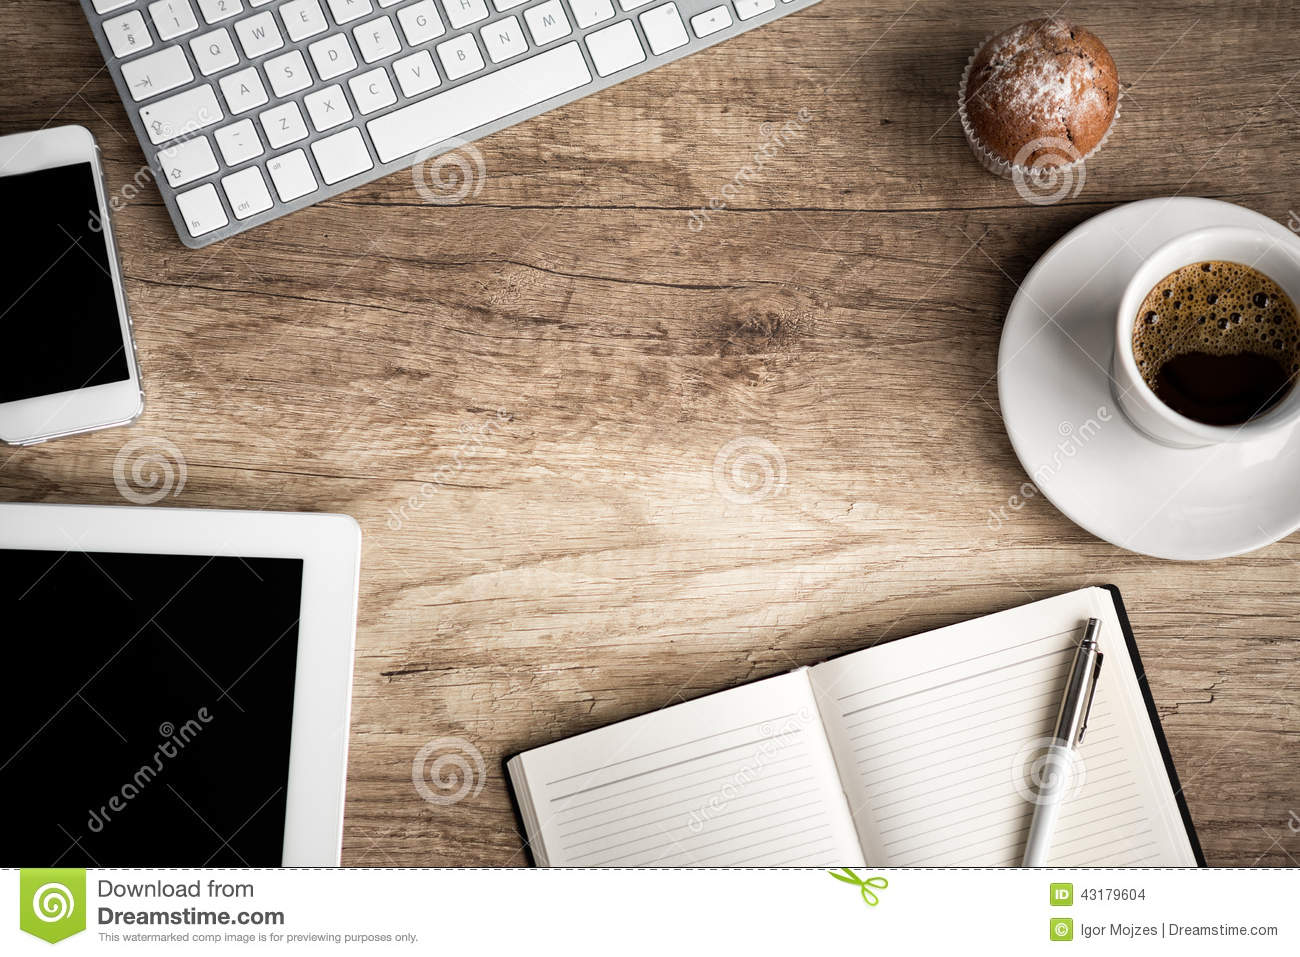 Download Wo0den  Table With Office  Supplies Stock Photo - Image of copy, desk: 43179604